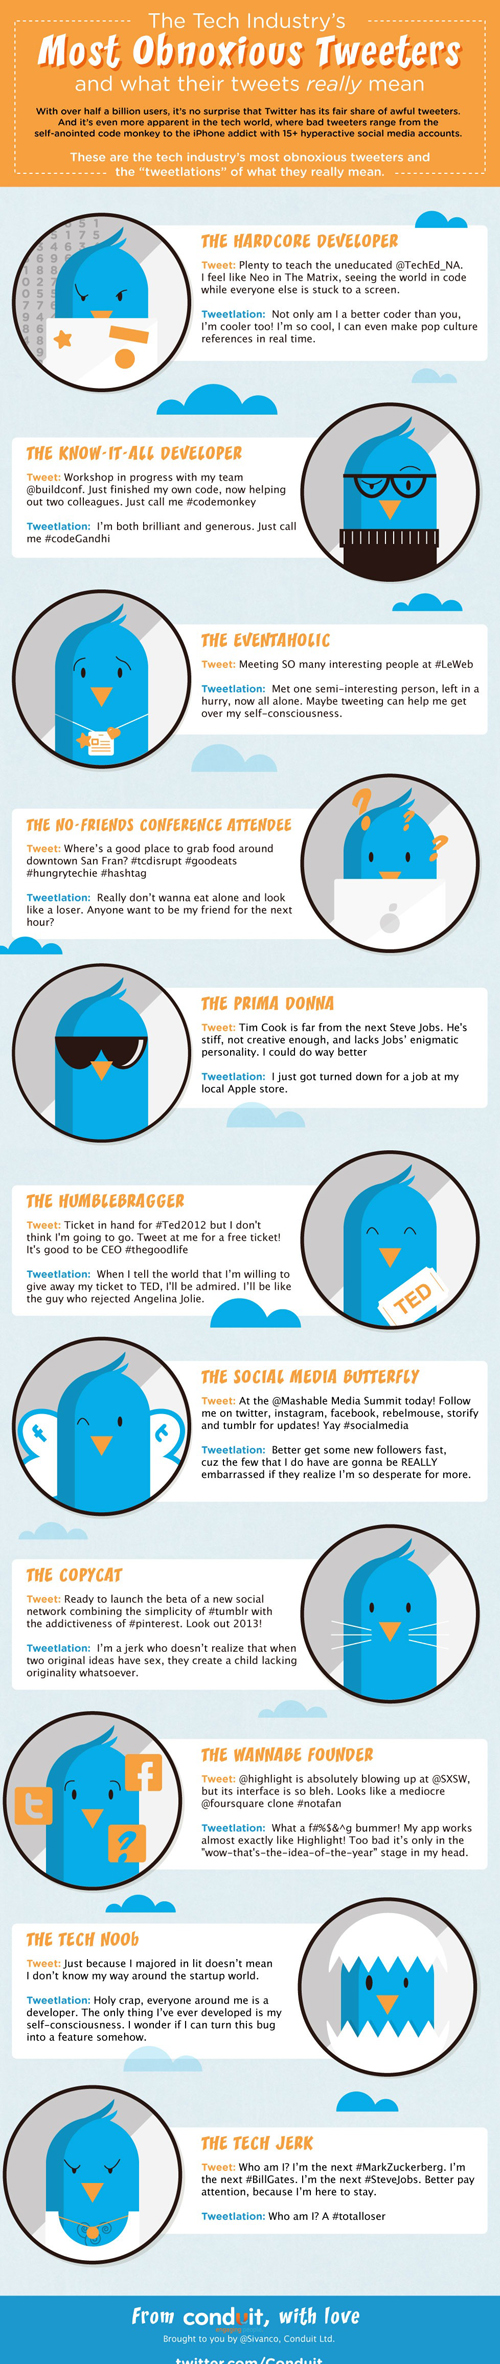 obnoxious-tweeters-infographic_final